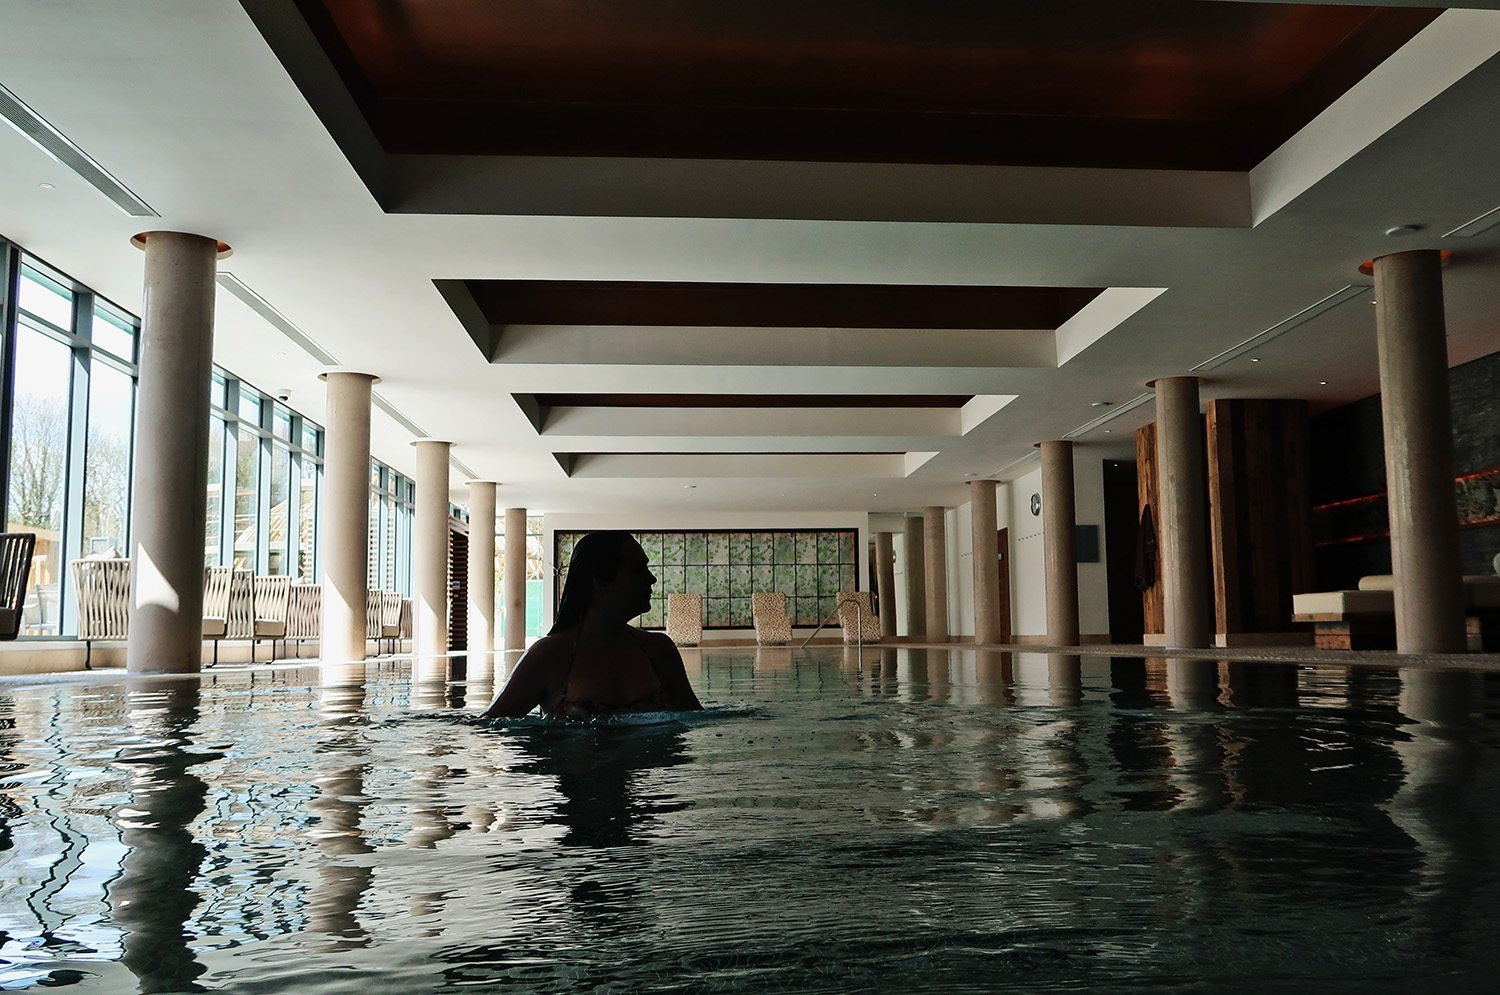 Silhouette of woman in an indoor swimming pool